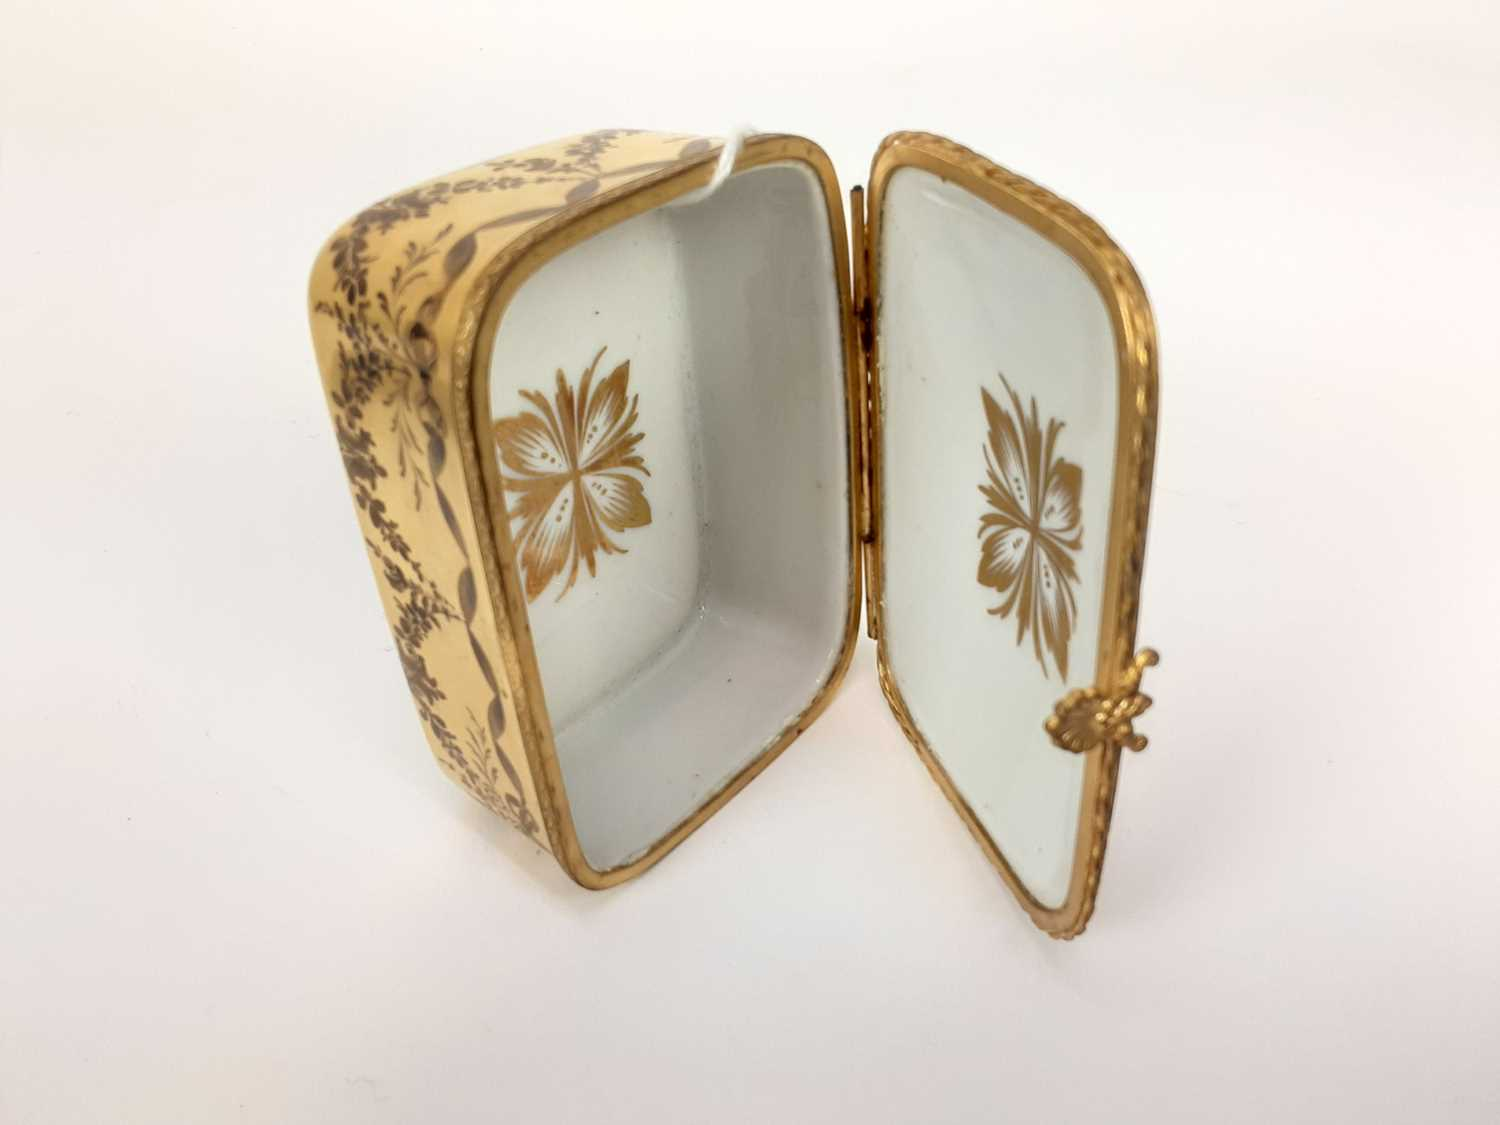 French ormolu-mounted porcelain box, late 19th century, probably Limoges, gilded and enamelled en gr - Image 6 of 7